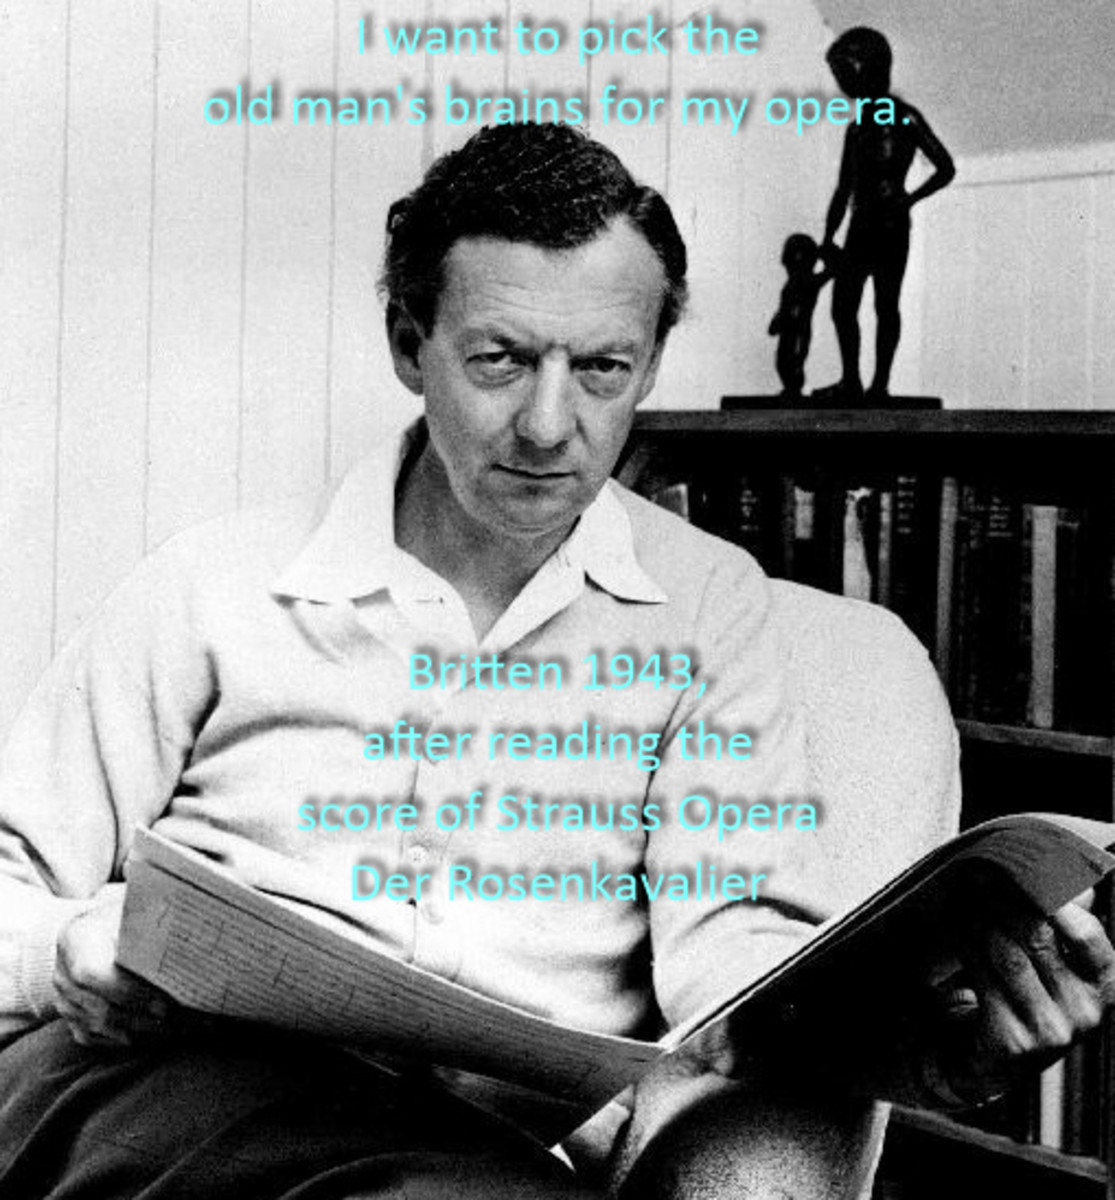 Benjamin Britten 1913-1976. The photo shows Britten reading a score of the opera Der Rosenkavalier by Richard Strauss overlaid with a quote form Britten himself.